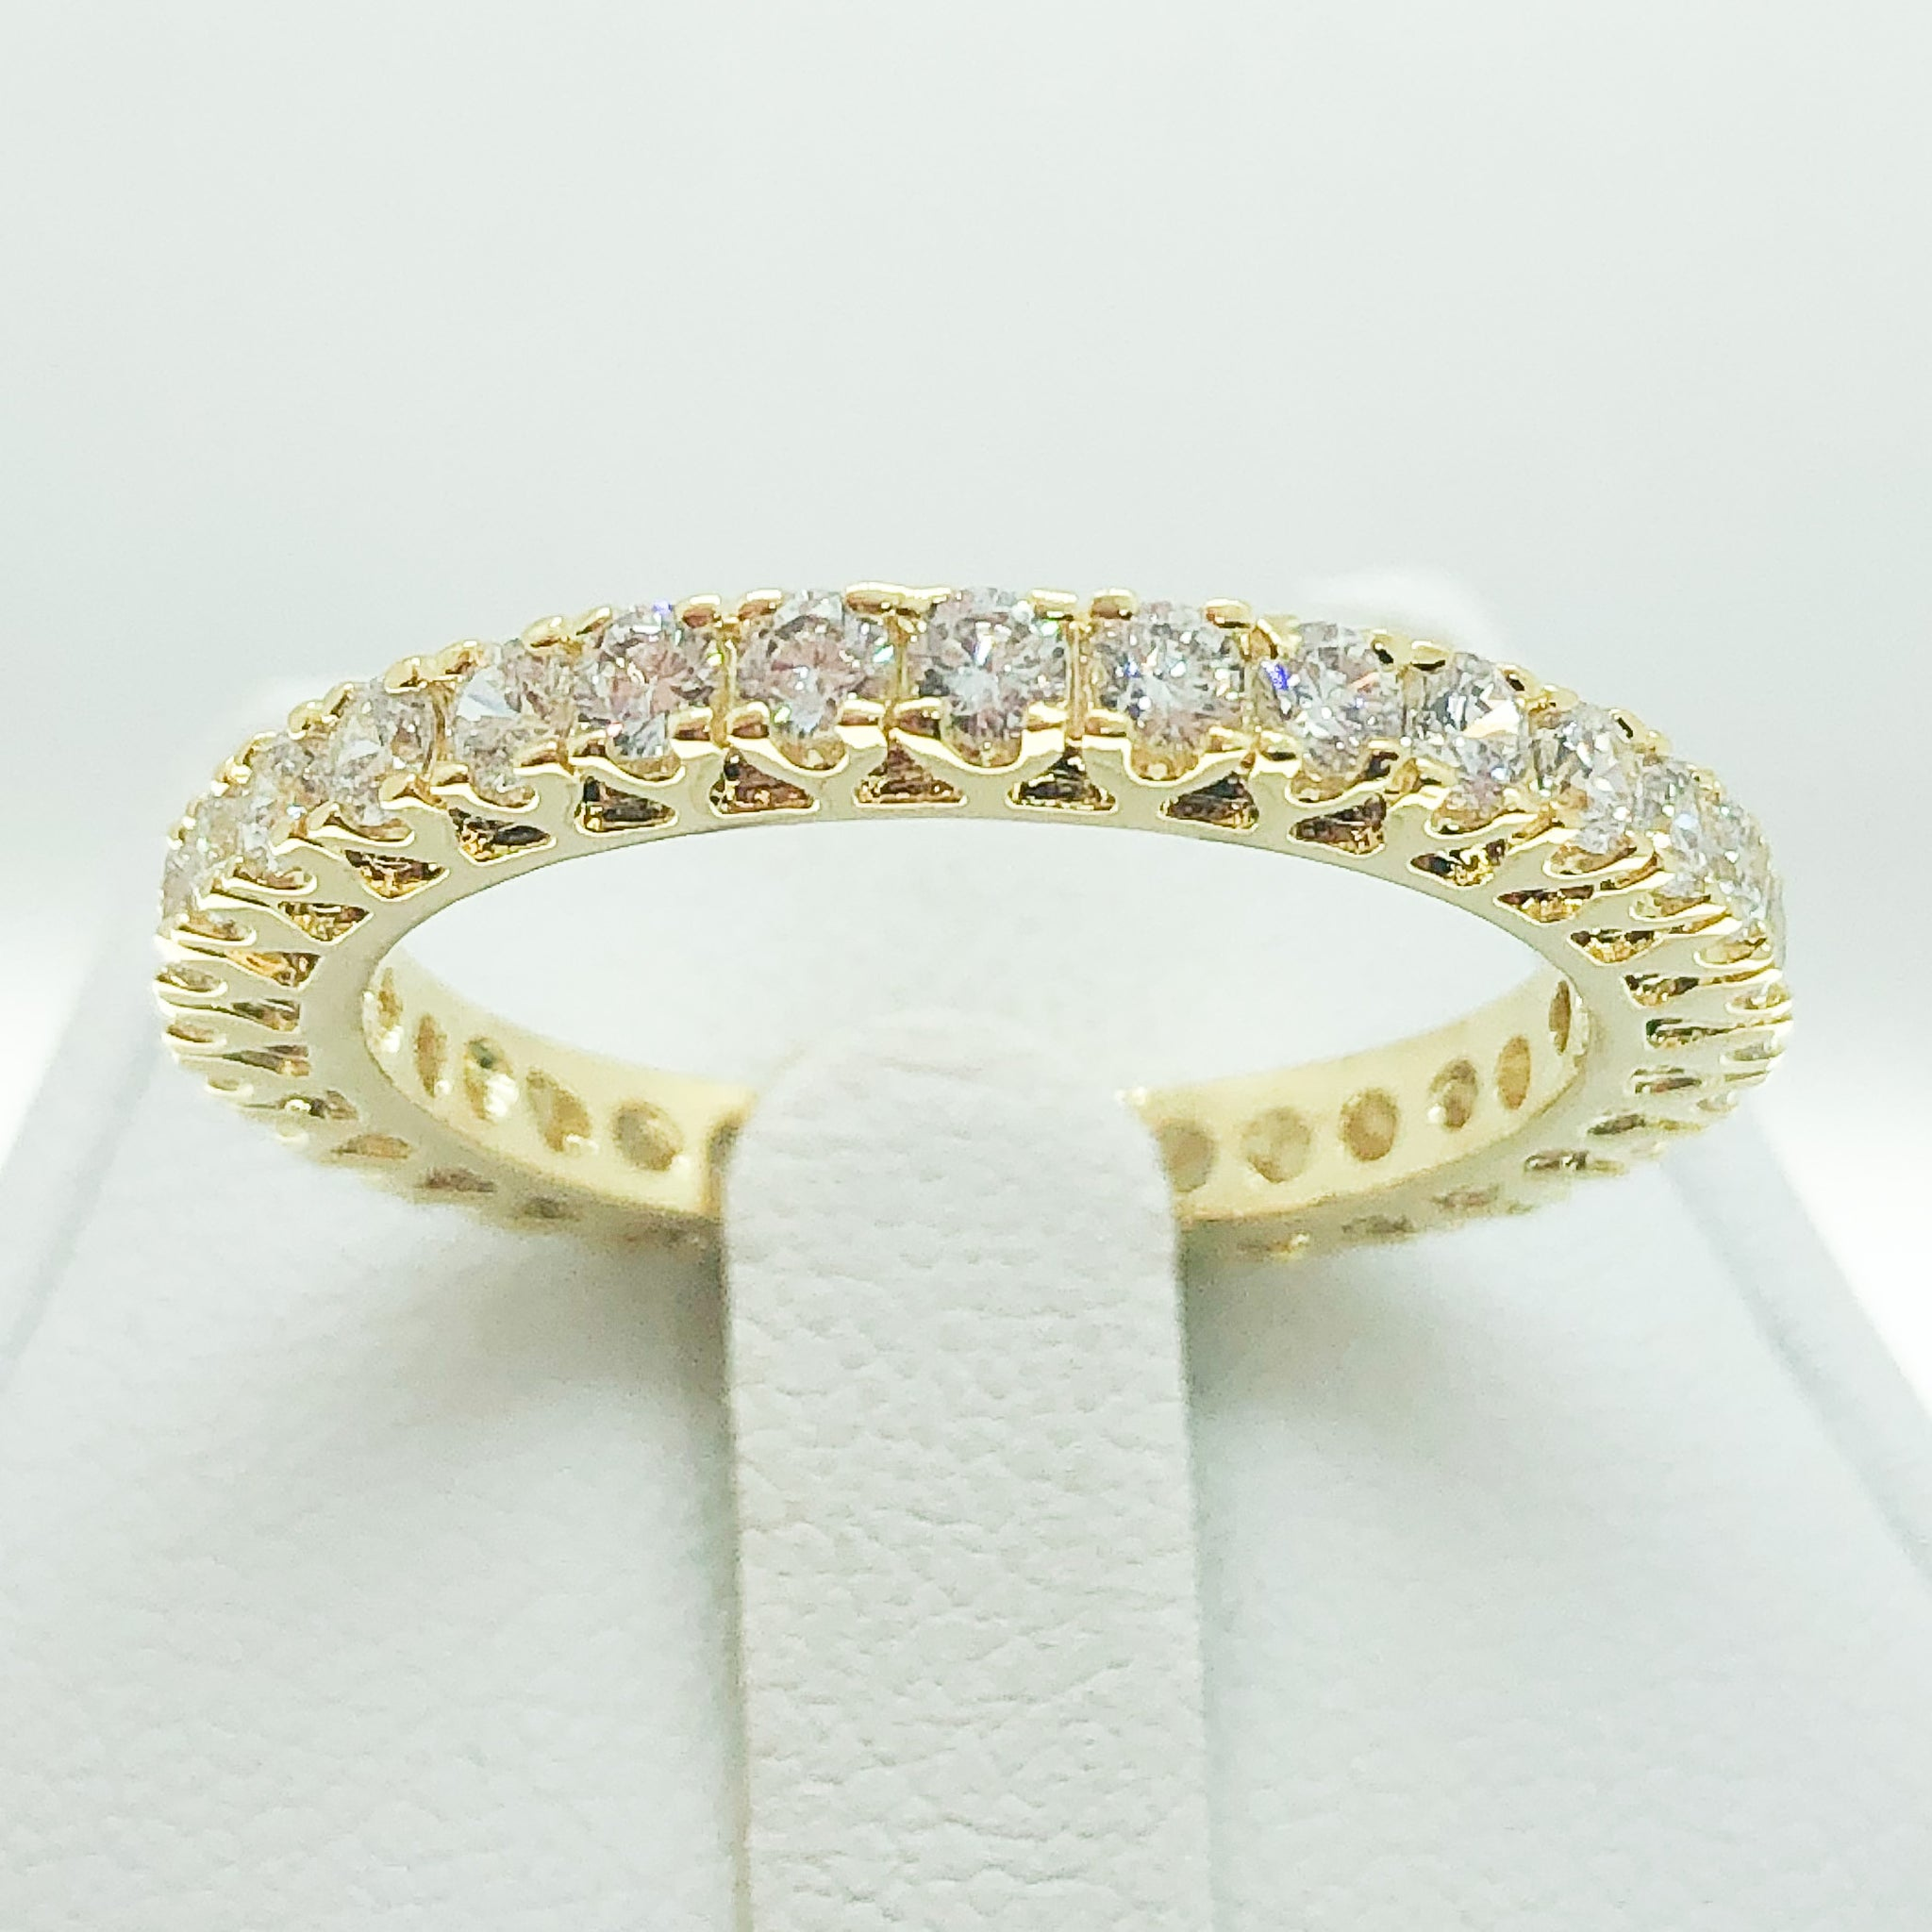 ID:R2073 Women Vintage Jewelry 18K Yellow Gold GF Radiant Engagement Wedding Promise Diamonique Bridal Eternity Band Ring